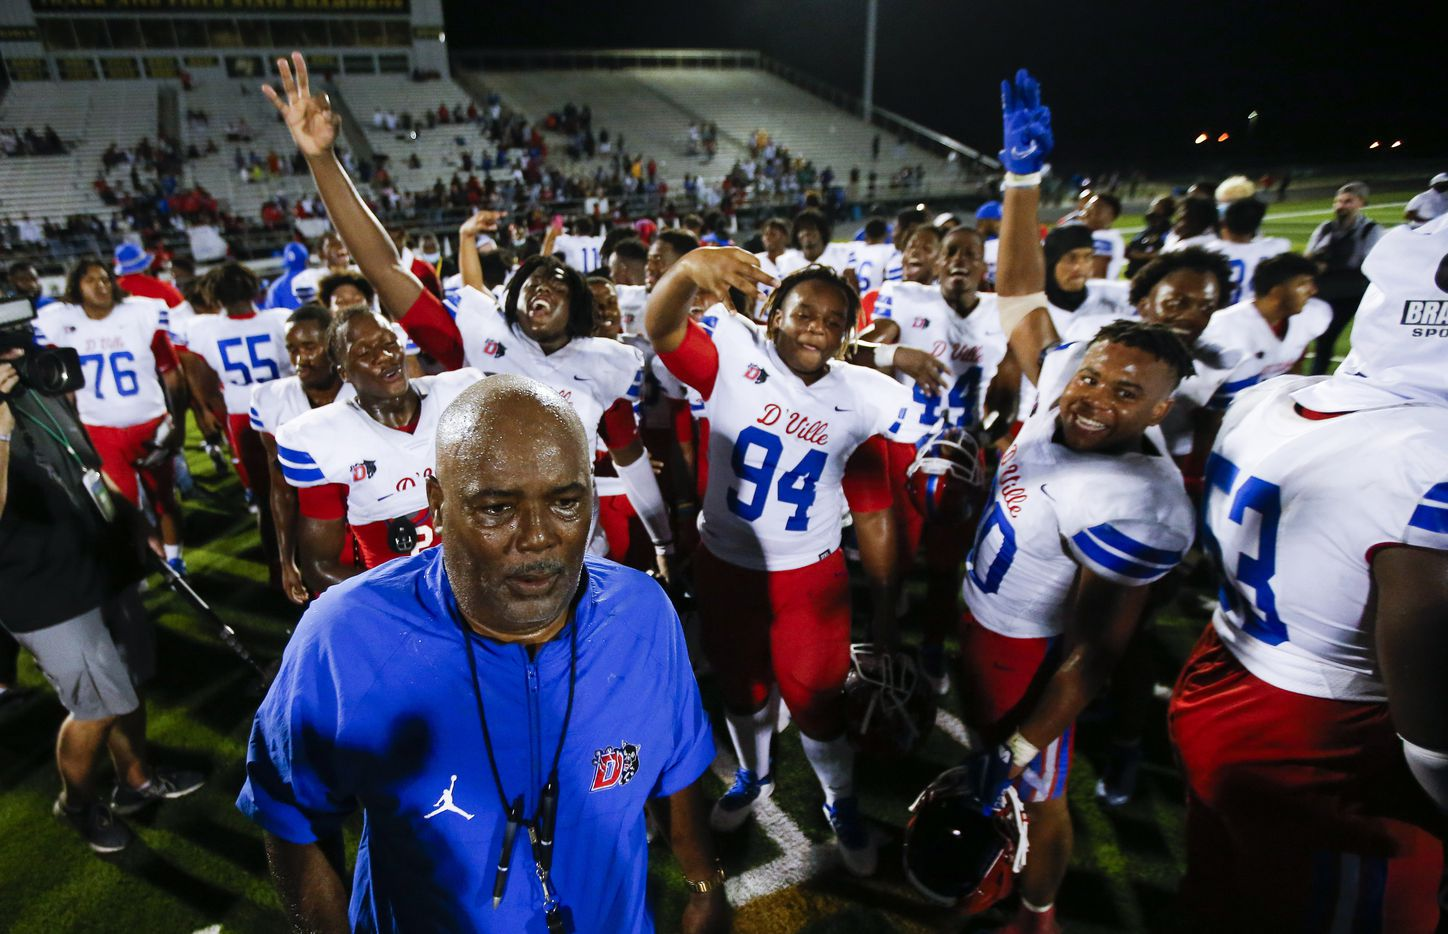 Duncanville celebrates a 42-21 win over DeSoto after a high school football game at DeSoto High School, Friday, September 17, 2021. It was Duncanville head coach Reginald Samples', lower right, 300th career win. (Brandon Wade/Special Contributor)